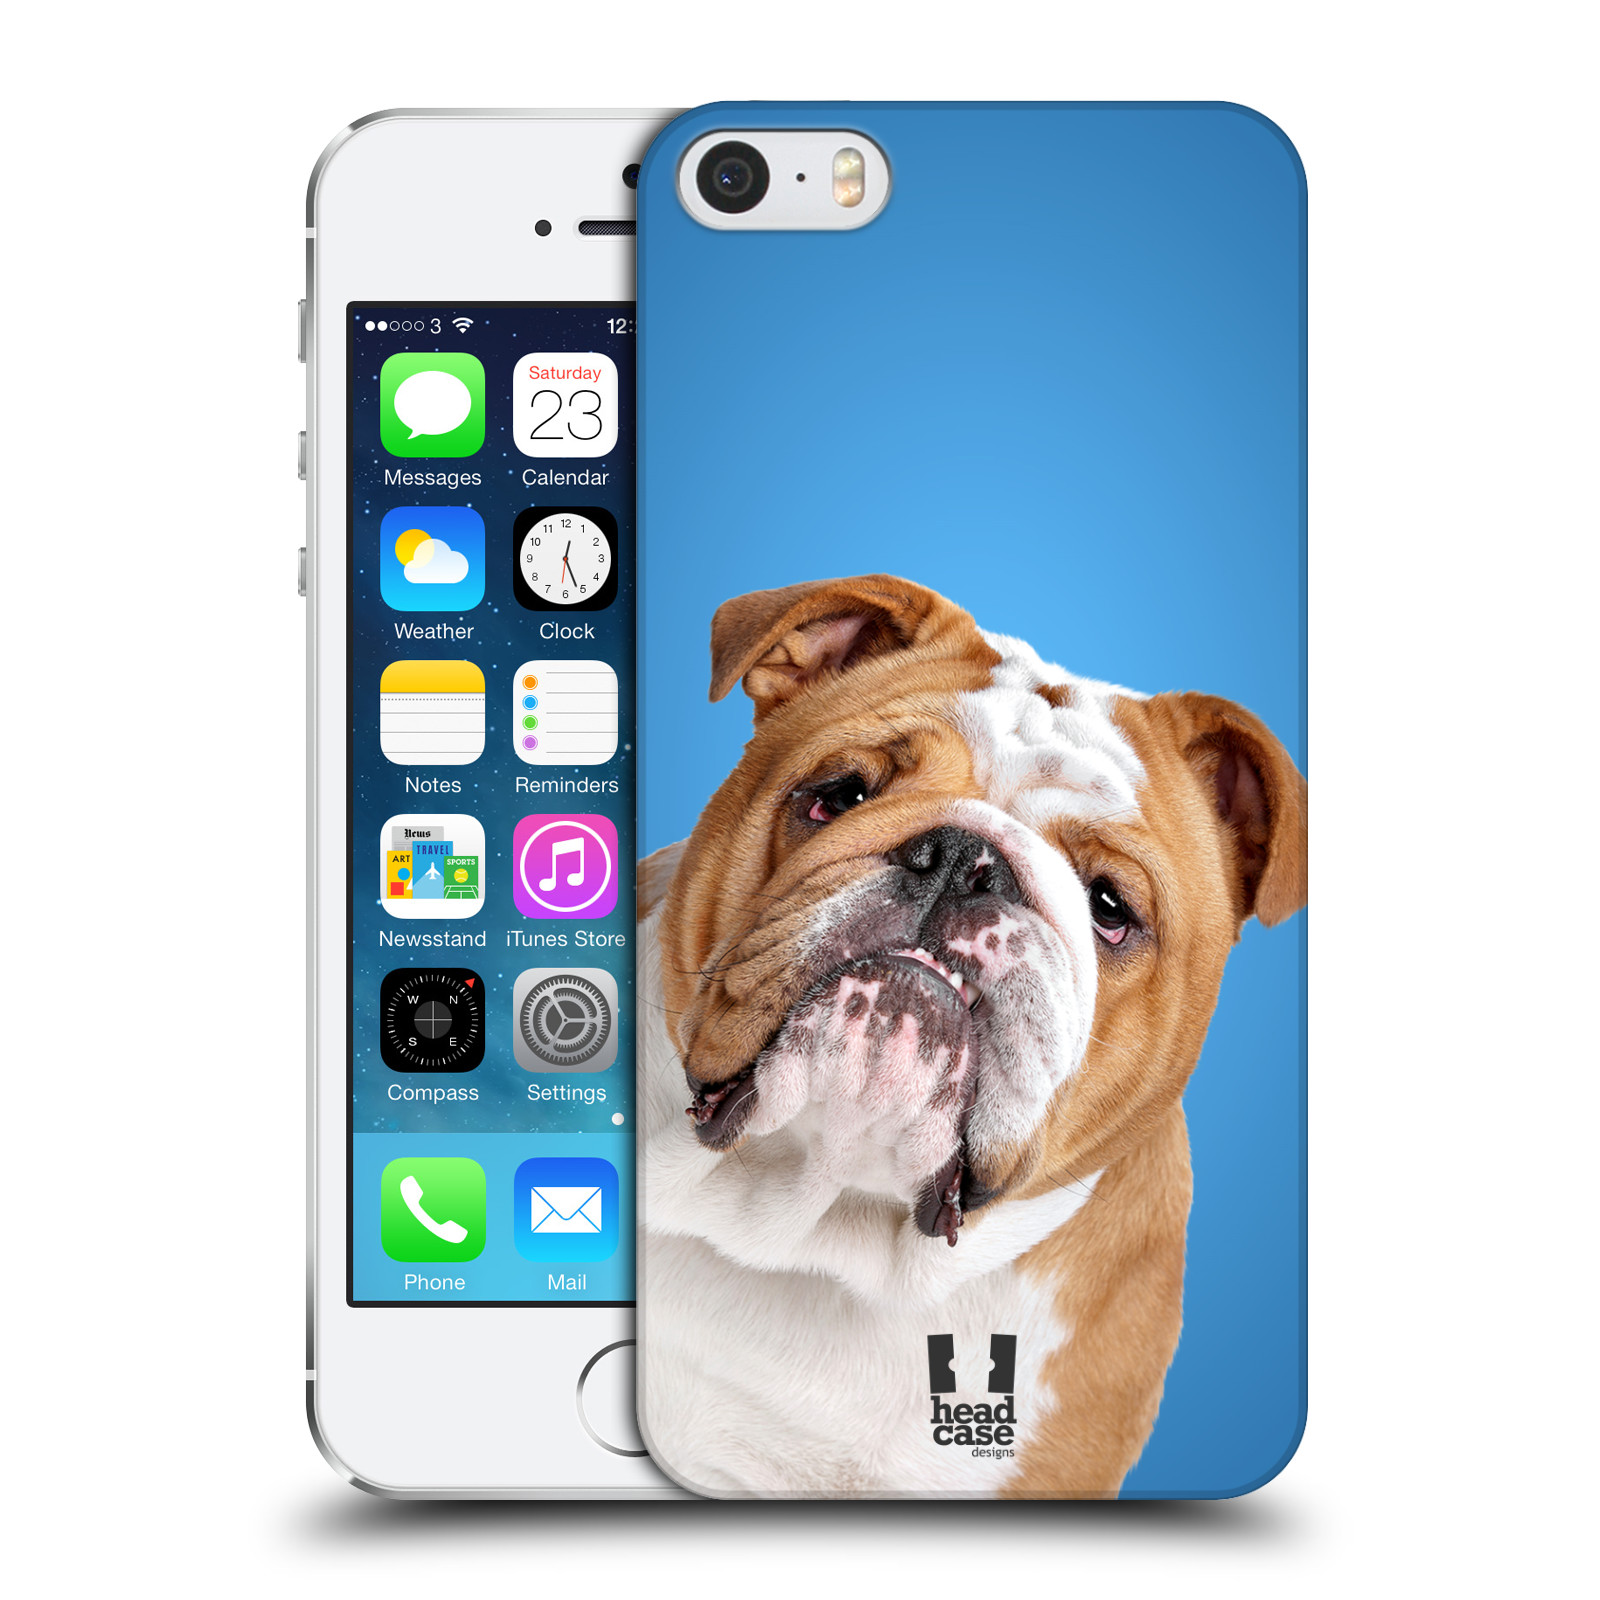 HEAD CASE DESIGNS DOG BREEDS HARD BACK CASE COVER FOR APPLE iPHONE 5 5S